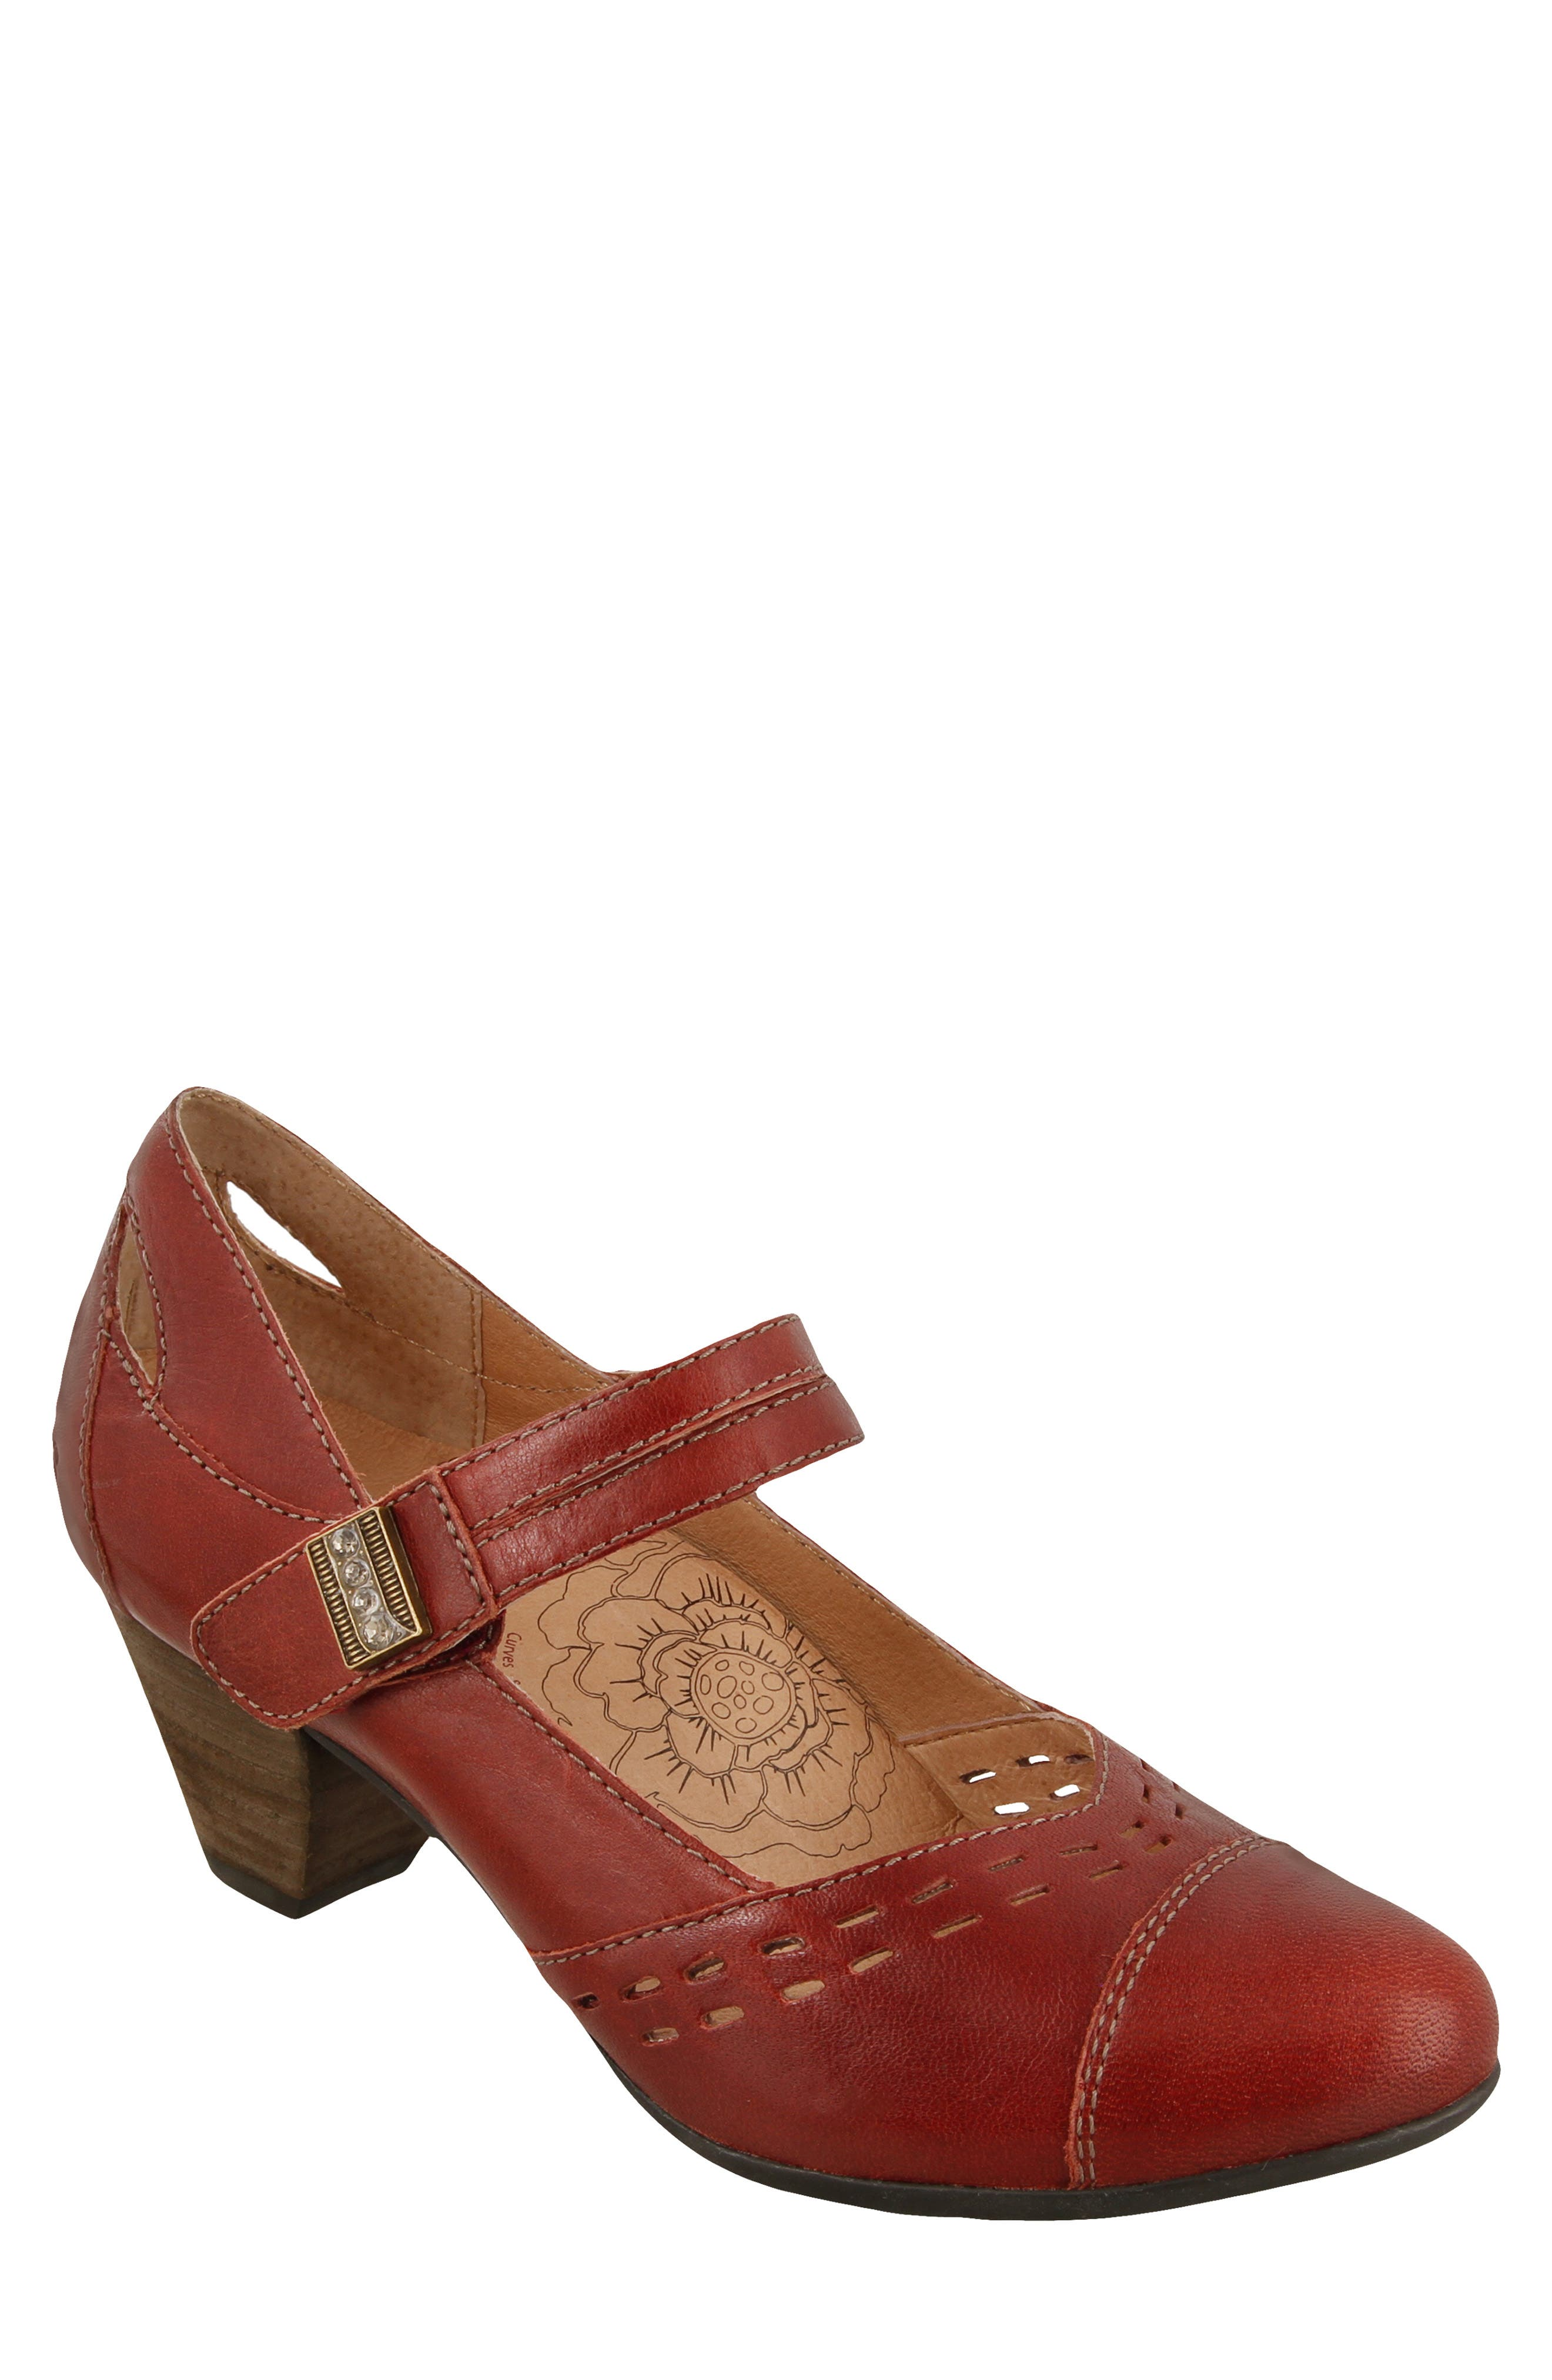 Stunner Laser Cutout Mary Jane Pump,                             Main thumbnail 1, color,                             Red Leather